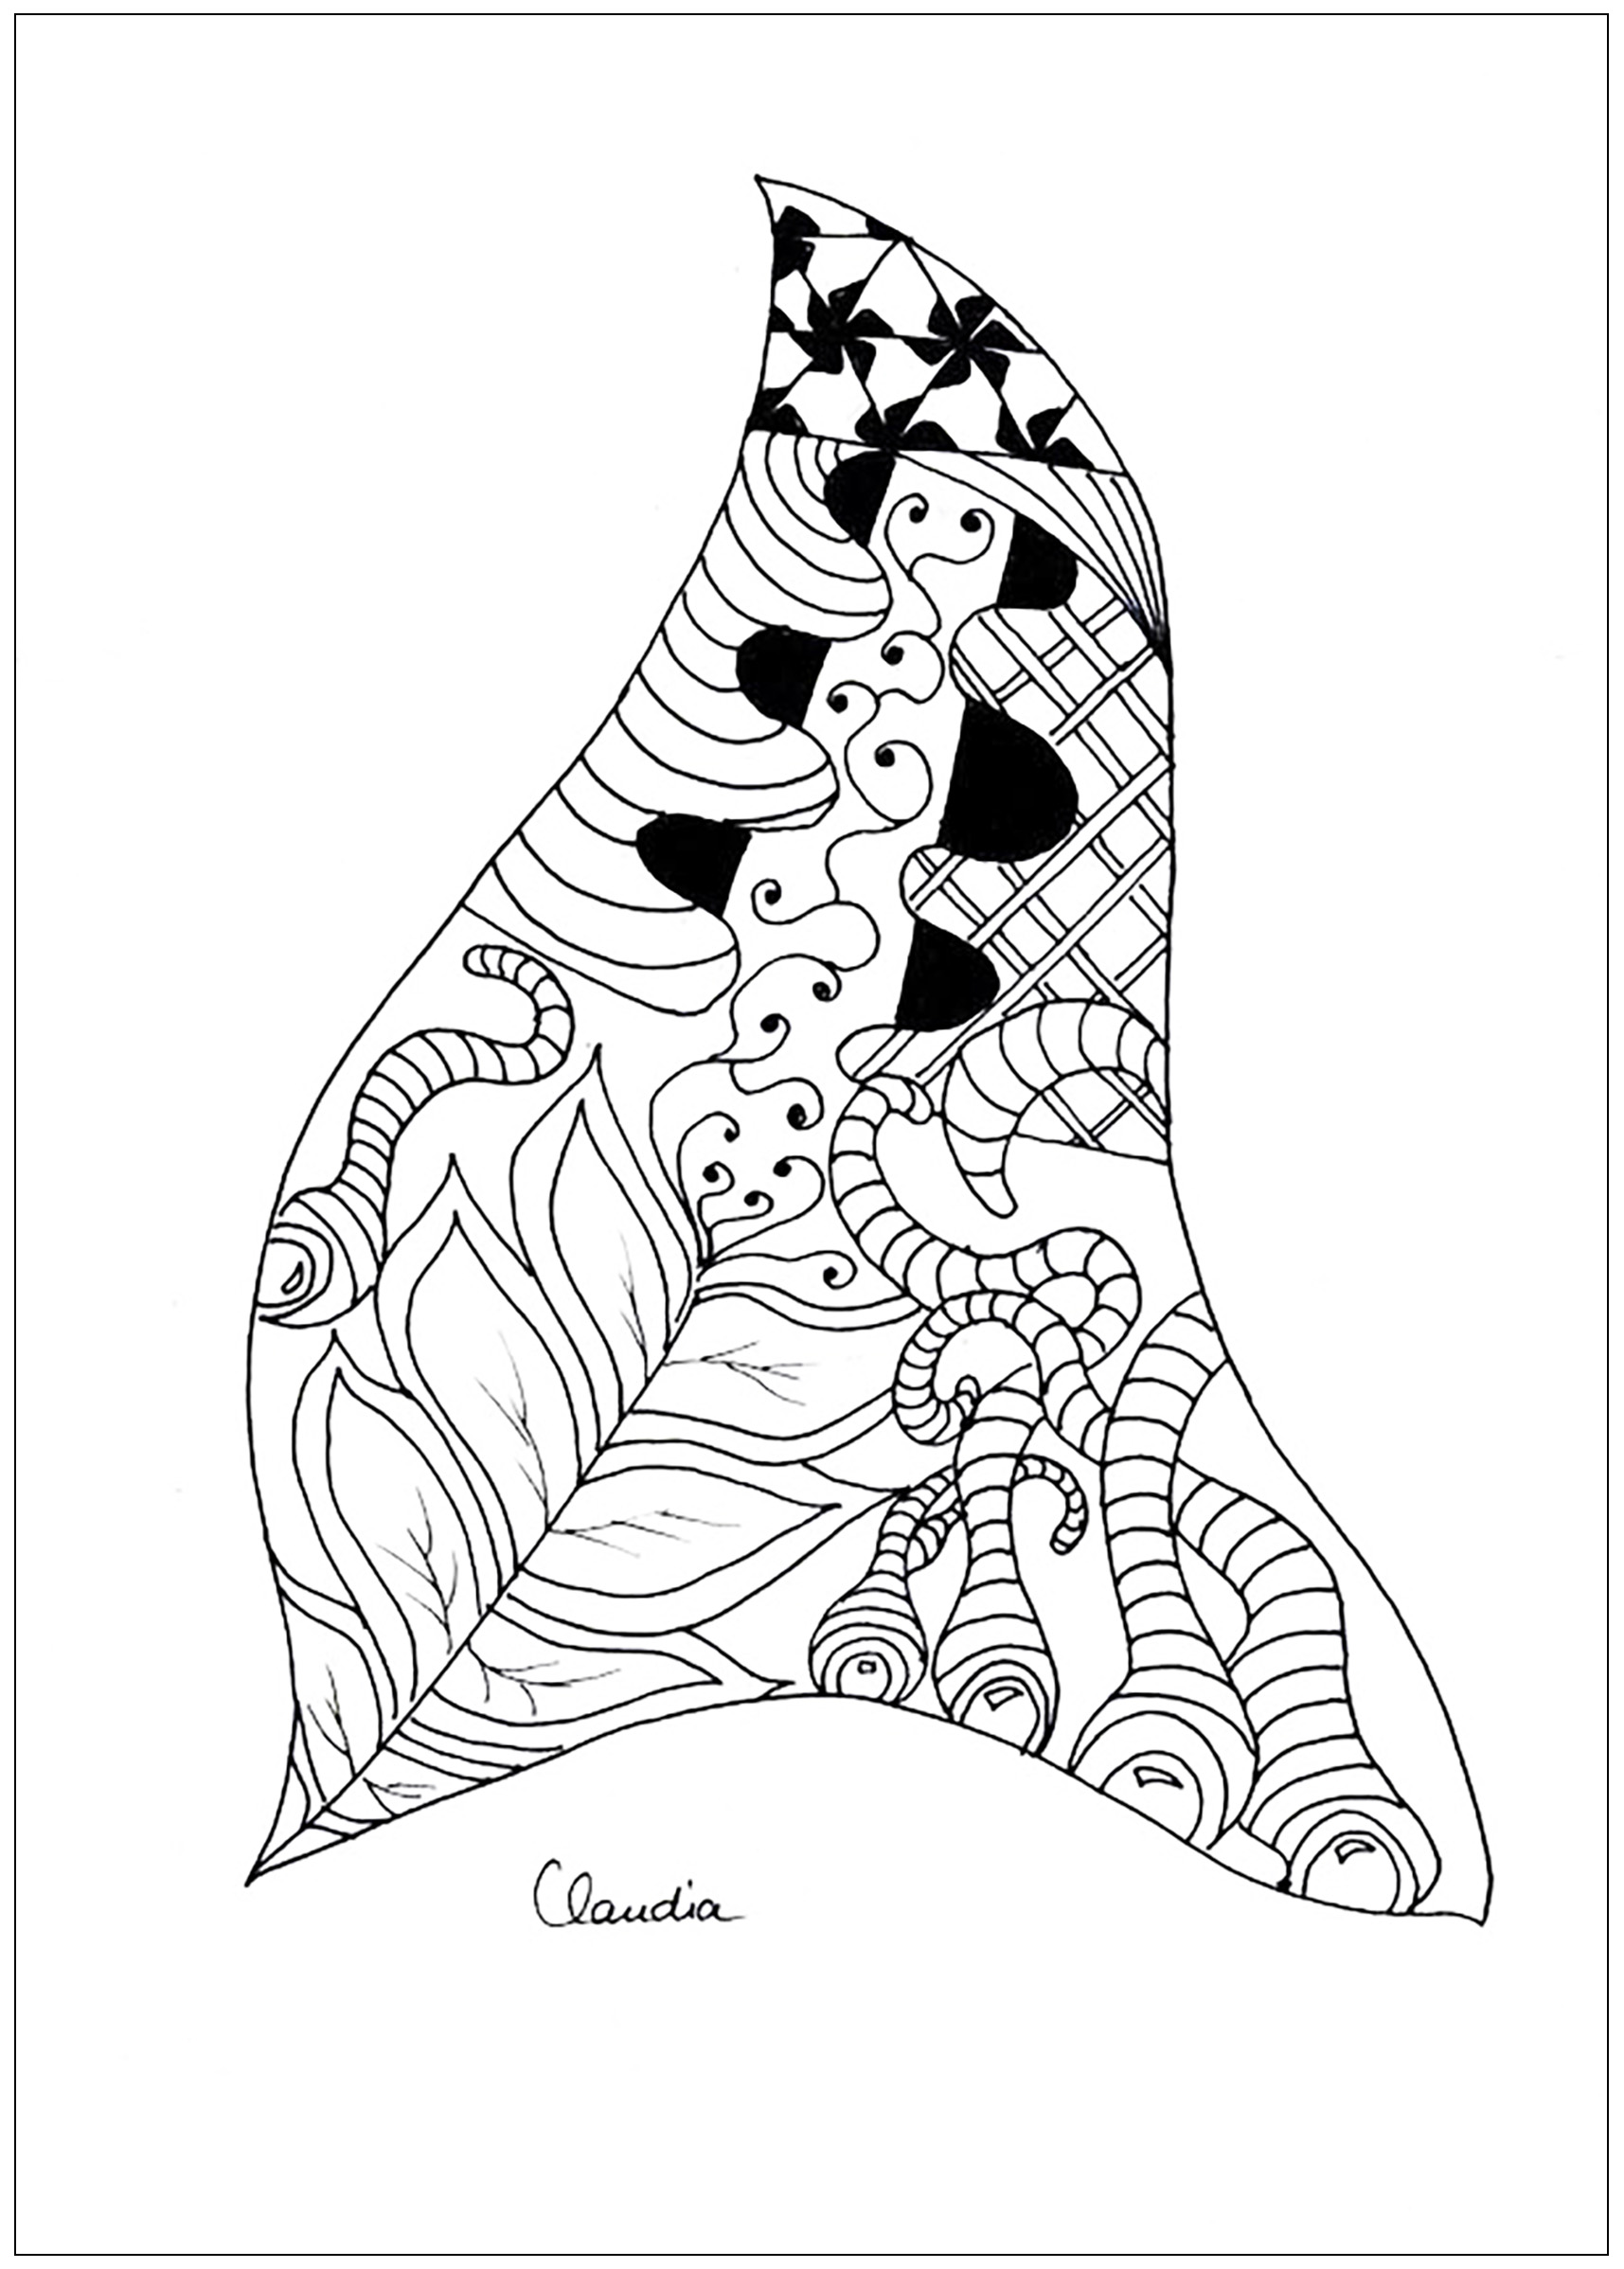 zentangle coloring pages free printable zentangle coloring pages for adults coloring page zentangle pages free coloring printable